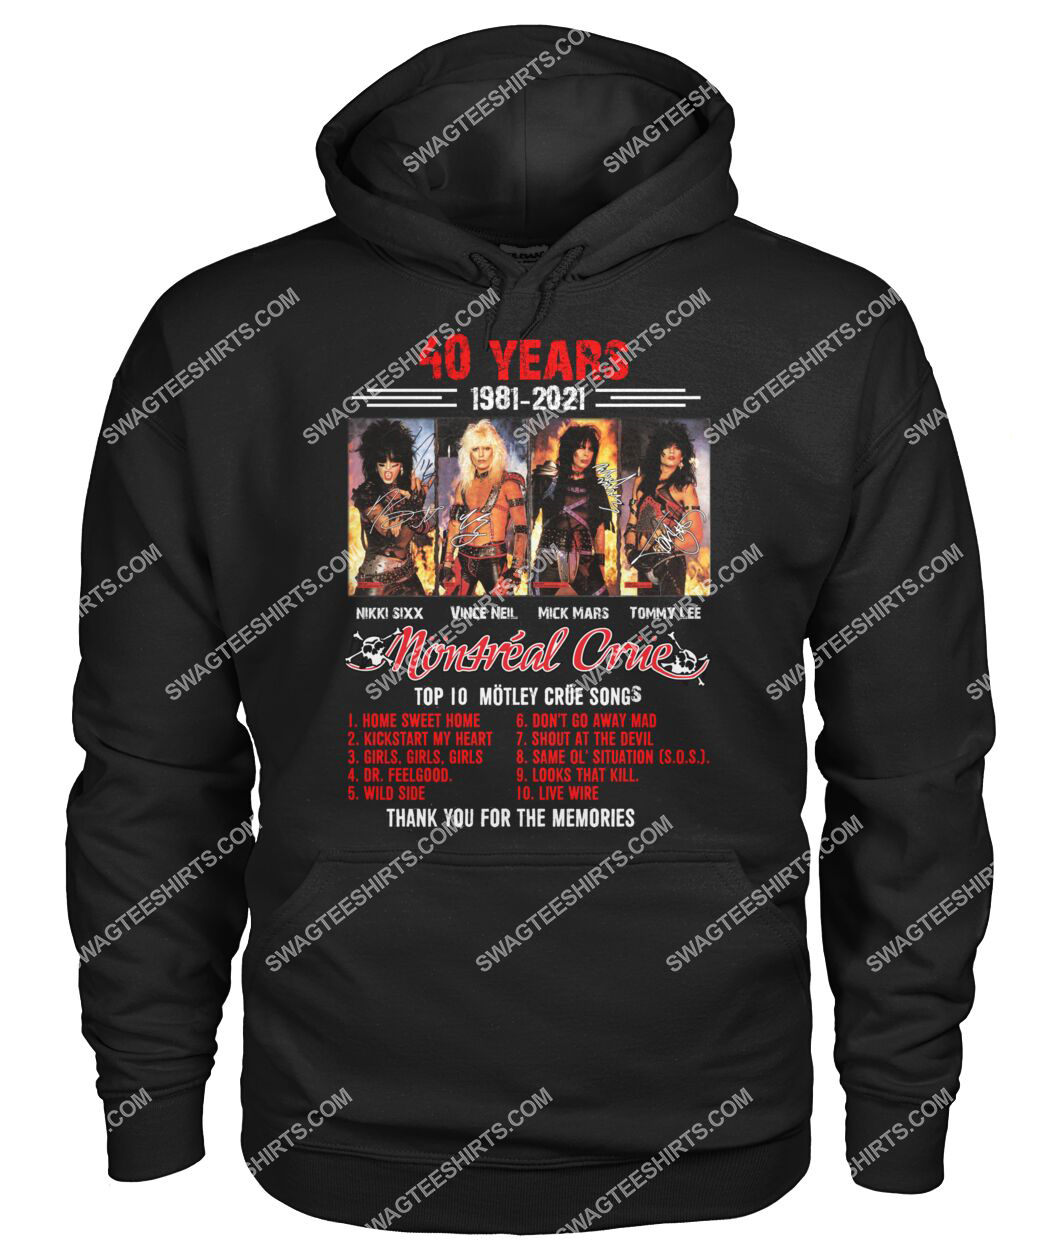 rock band motley crue 40 years thank you for memories signature hoodie 1